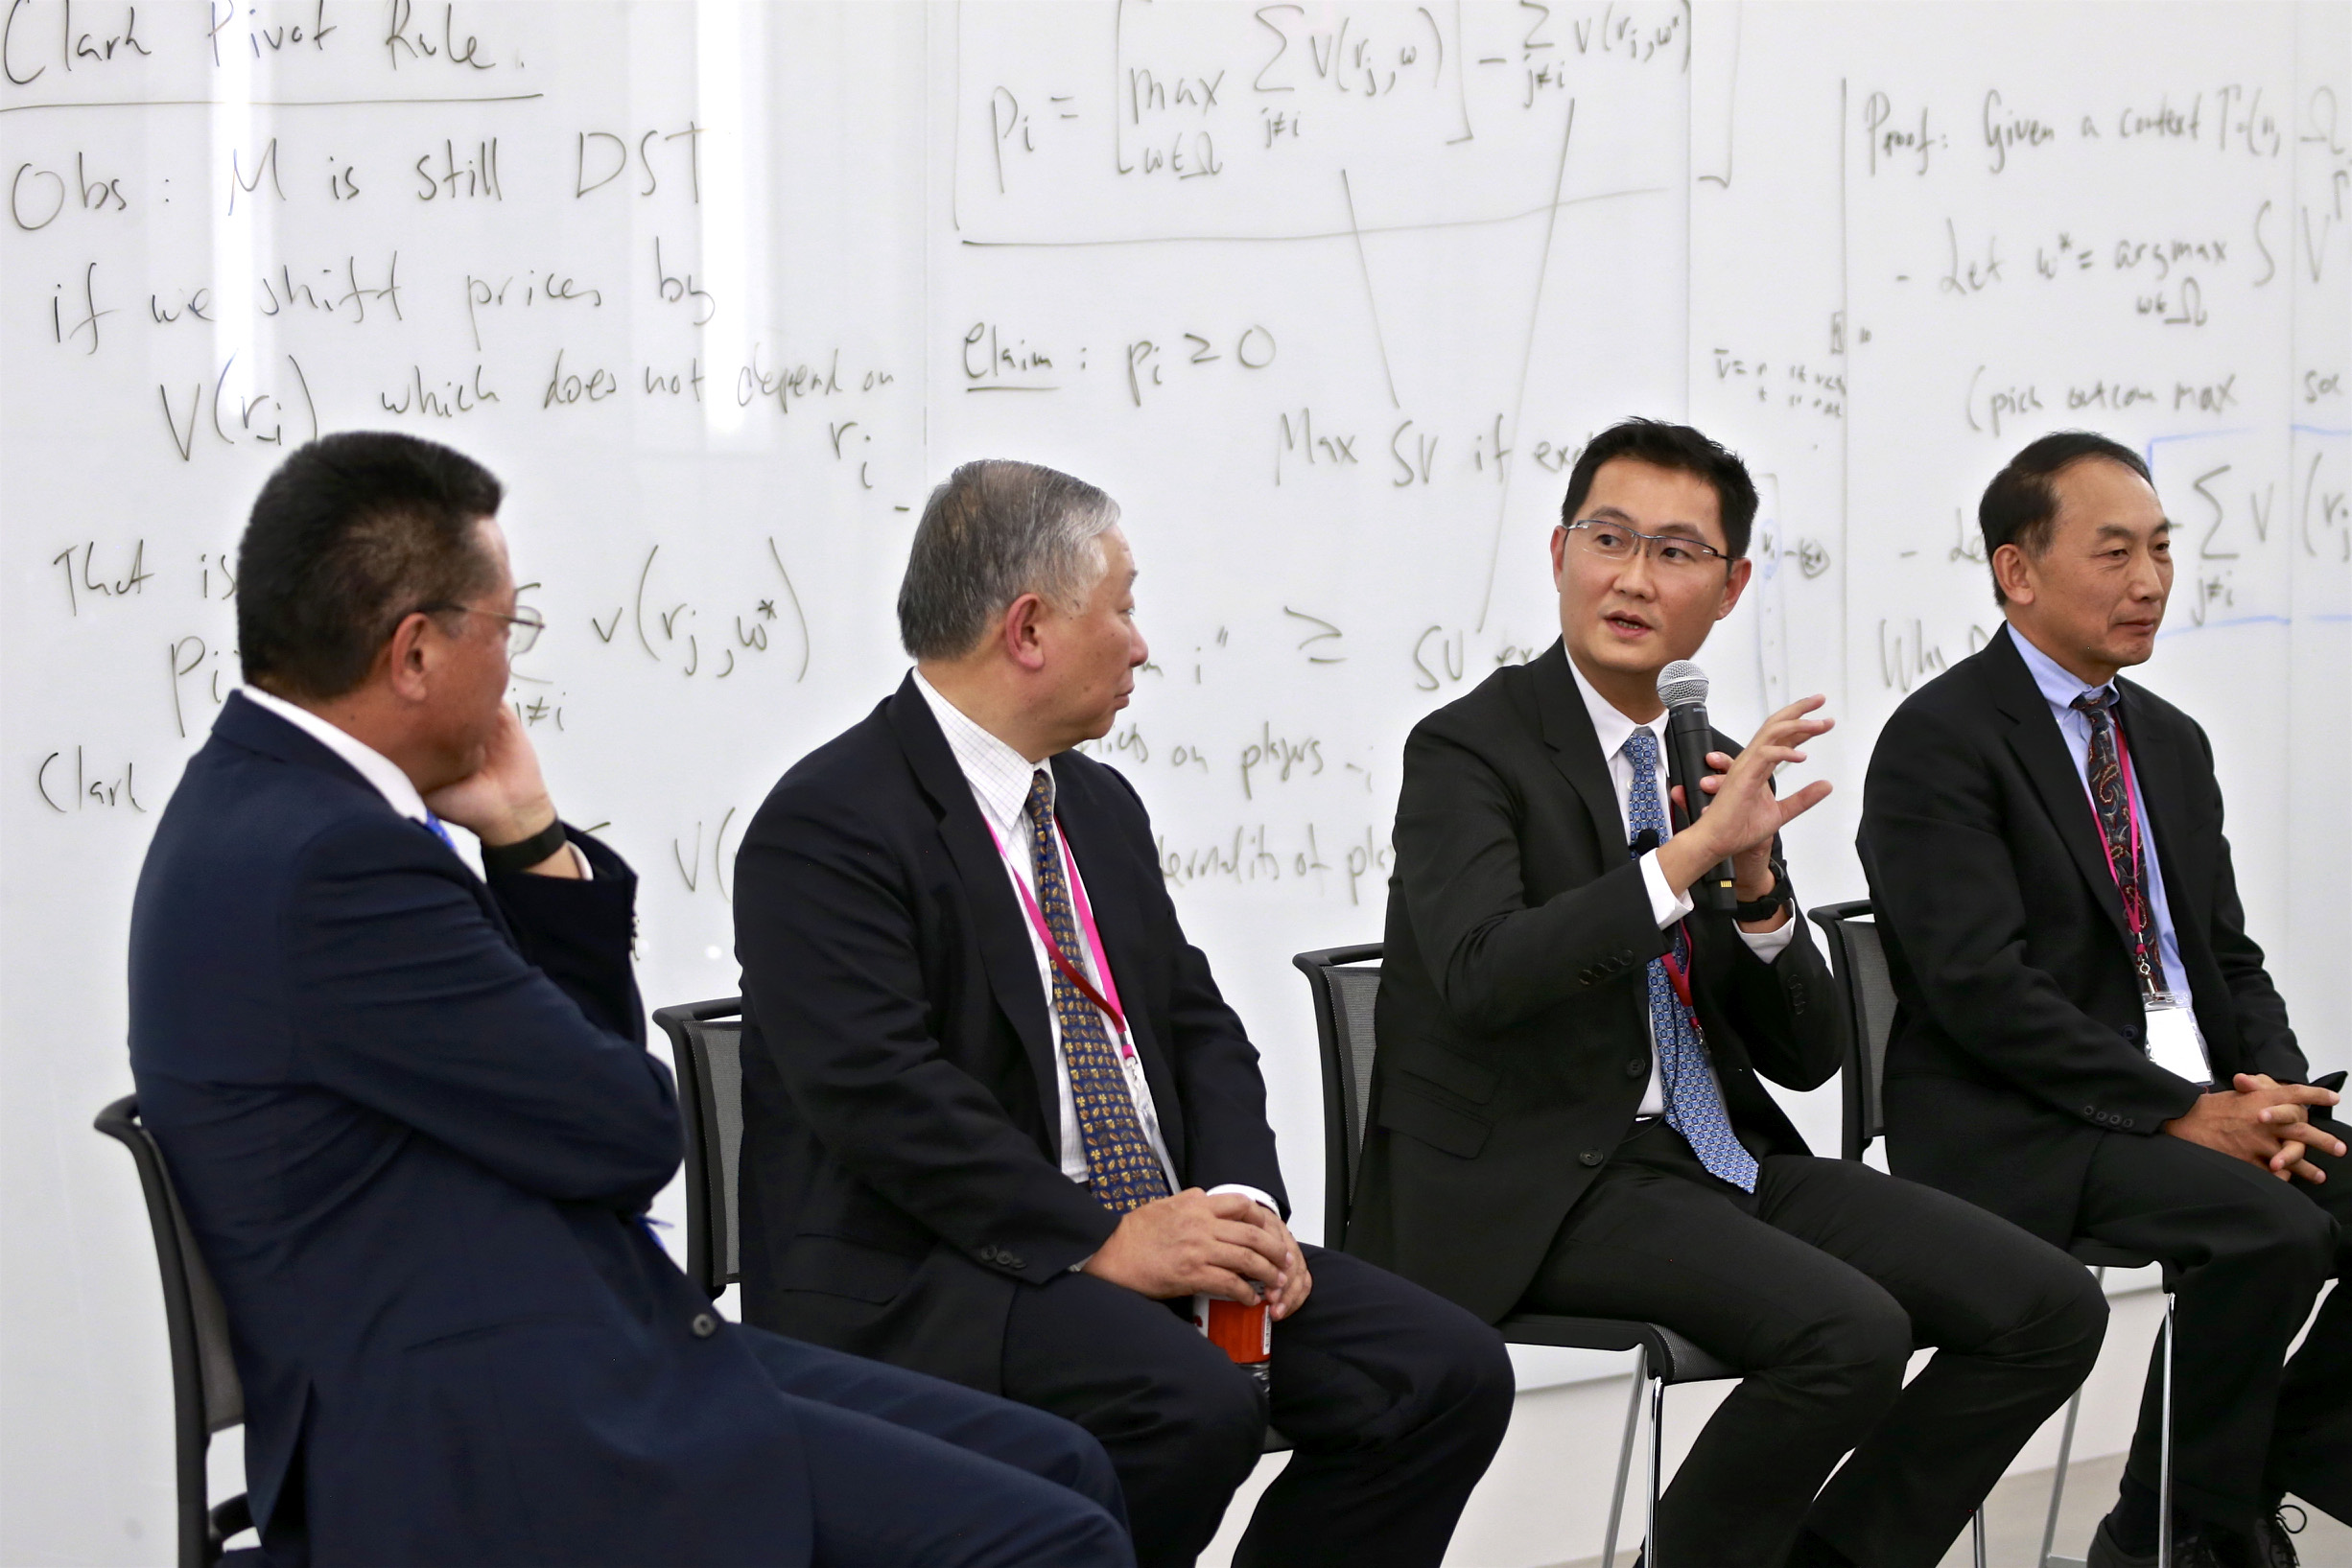 Cornell Tech - Tencent's Founder Ma Huateng Shares